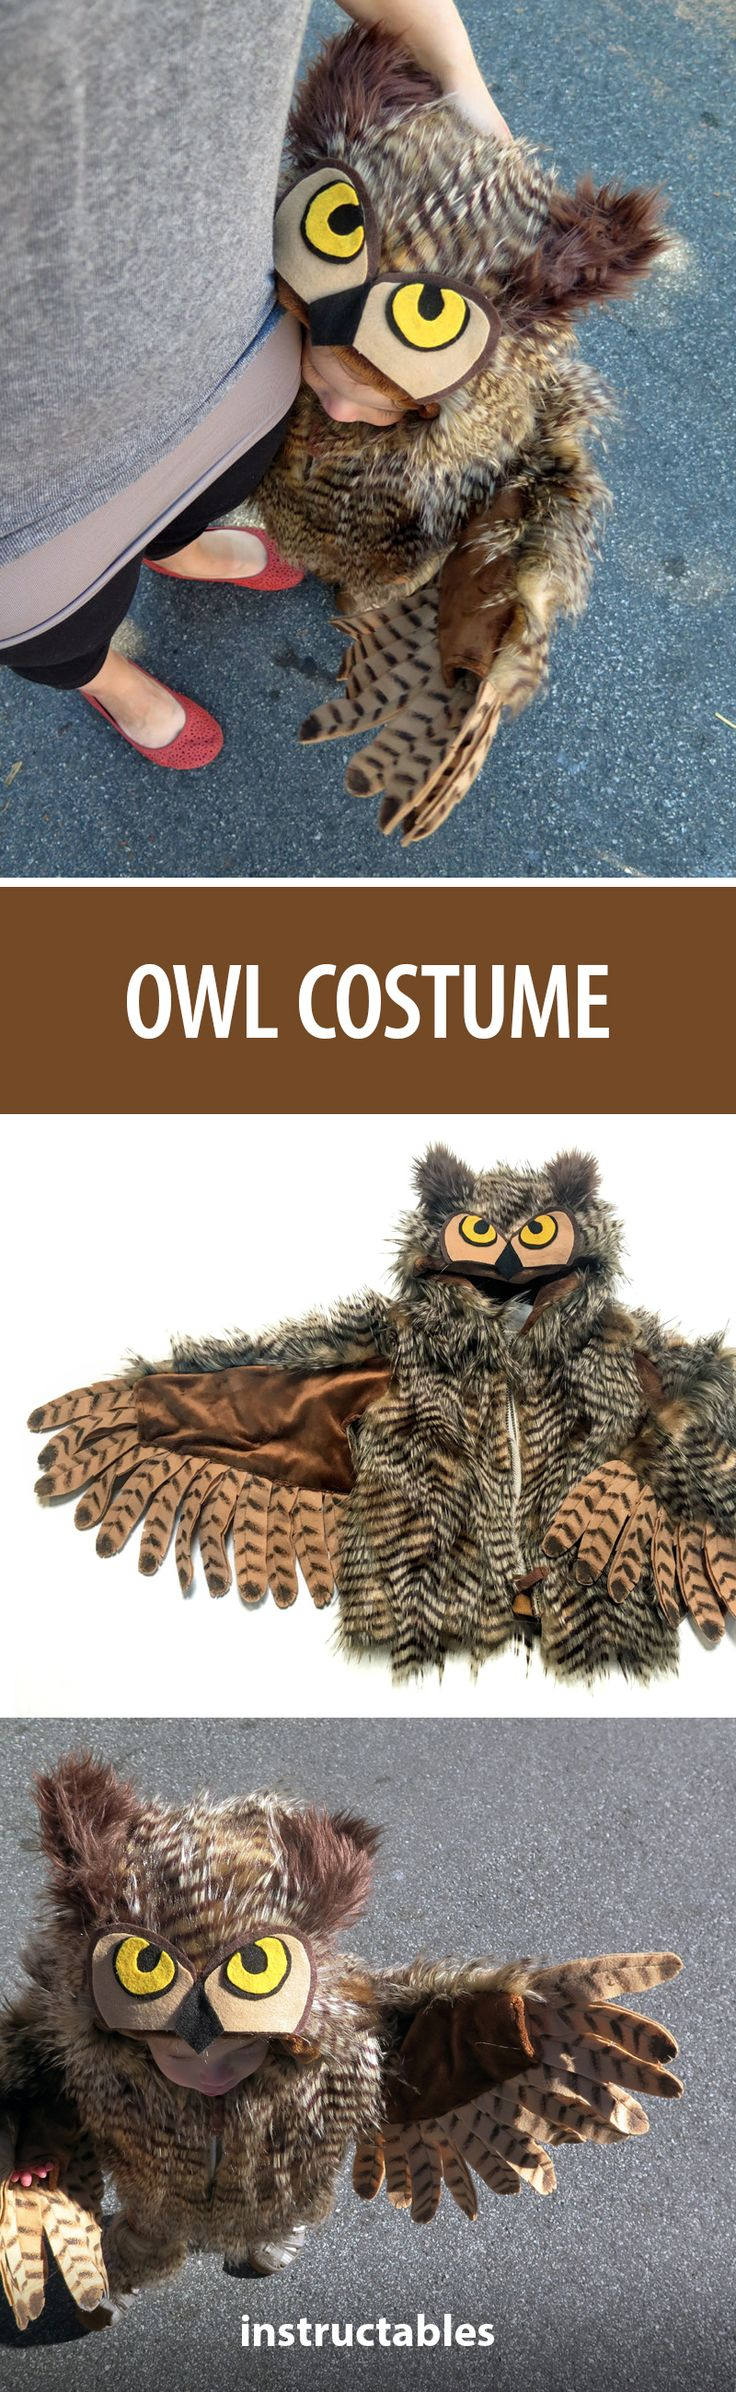 This halloween I set out to make my good friend's daughter an owl costume after her favorite animal. #HalloweenCostume